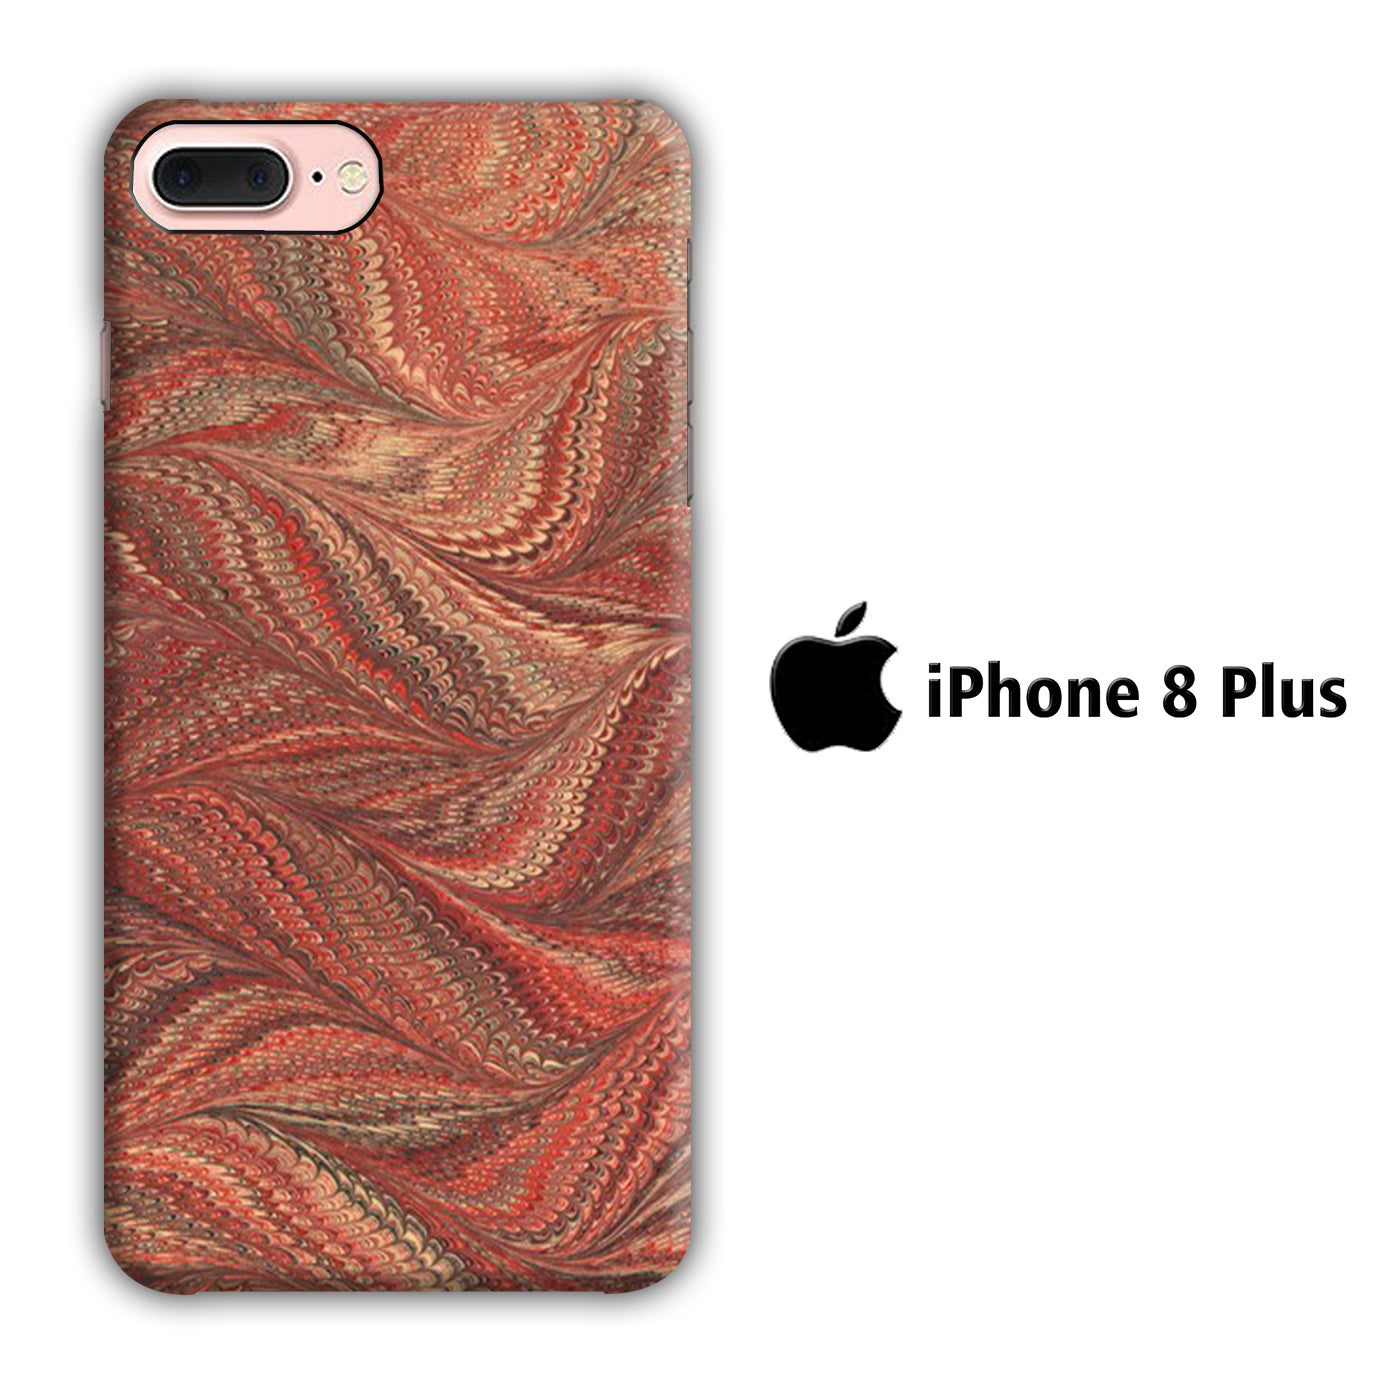 Marble Bird Skin iPhone 8 Plus 3D Case